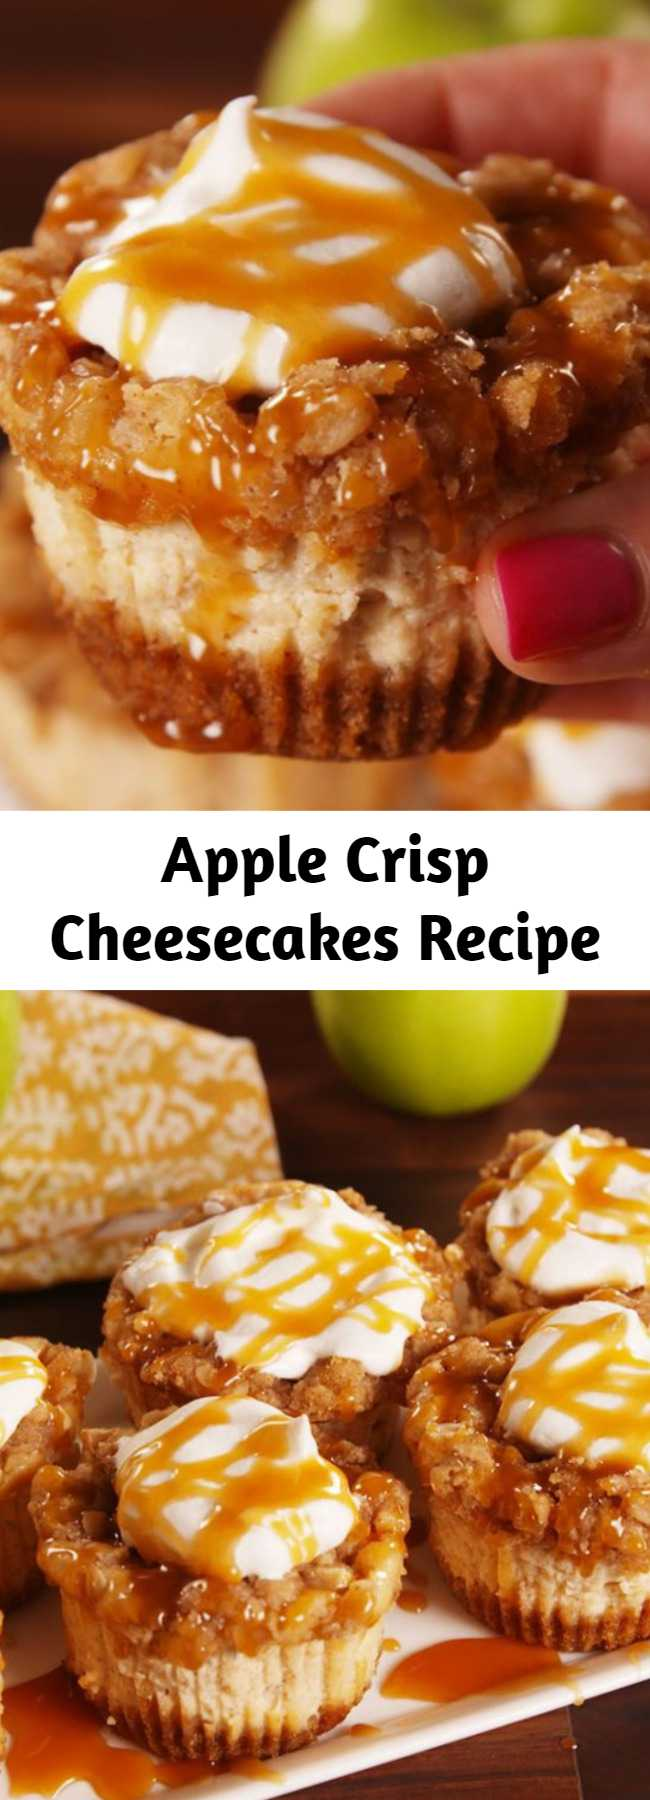 Apple Crisp Cheesecakes Recipe - To have cheesecake faster try these Mini Apple Cheesecakes. You won't be able to eat just one.